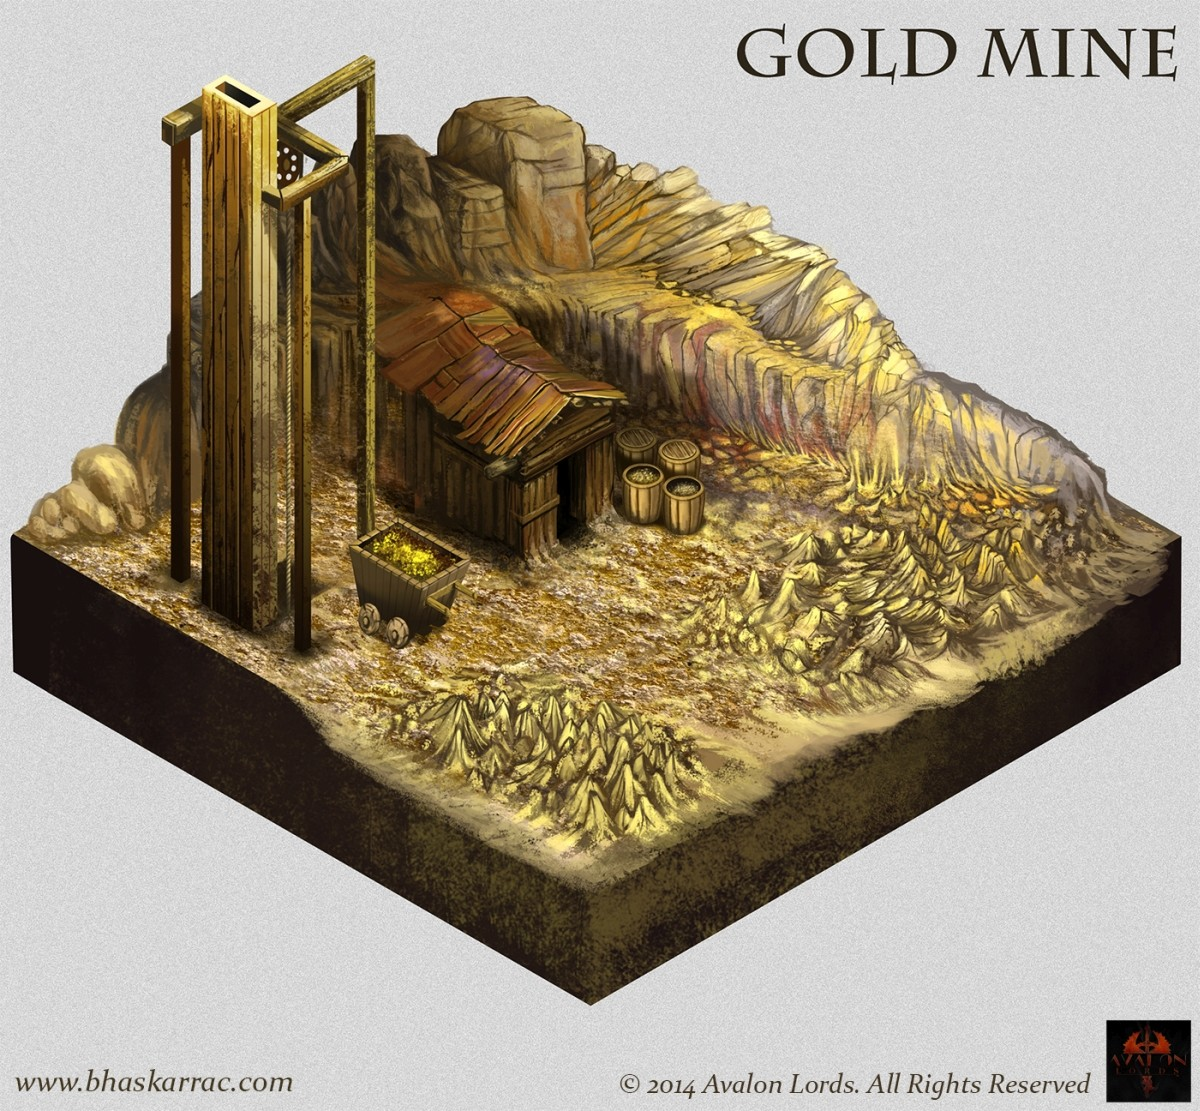 Avalon's Lord Game Concepts - Gold Mine Concept